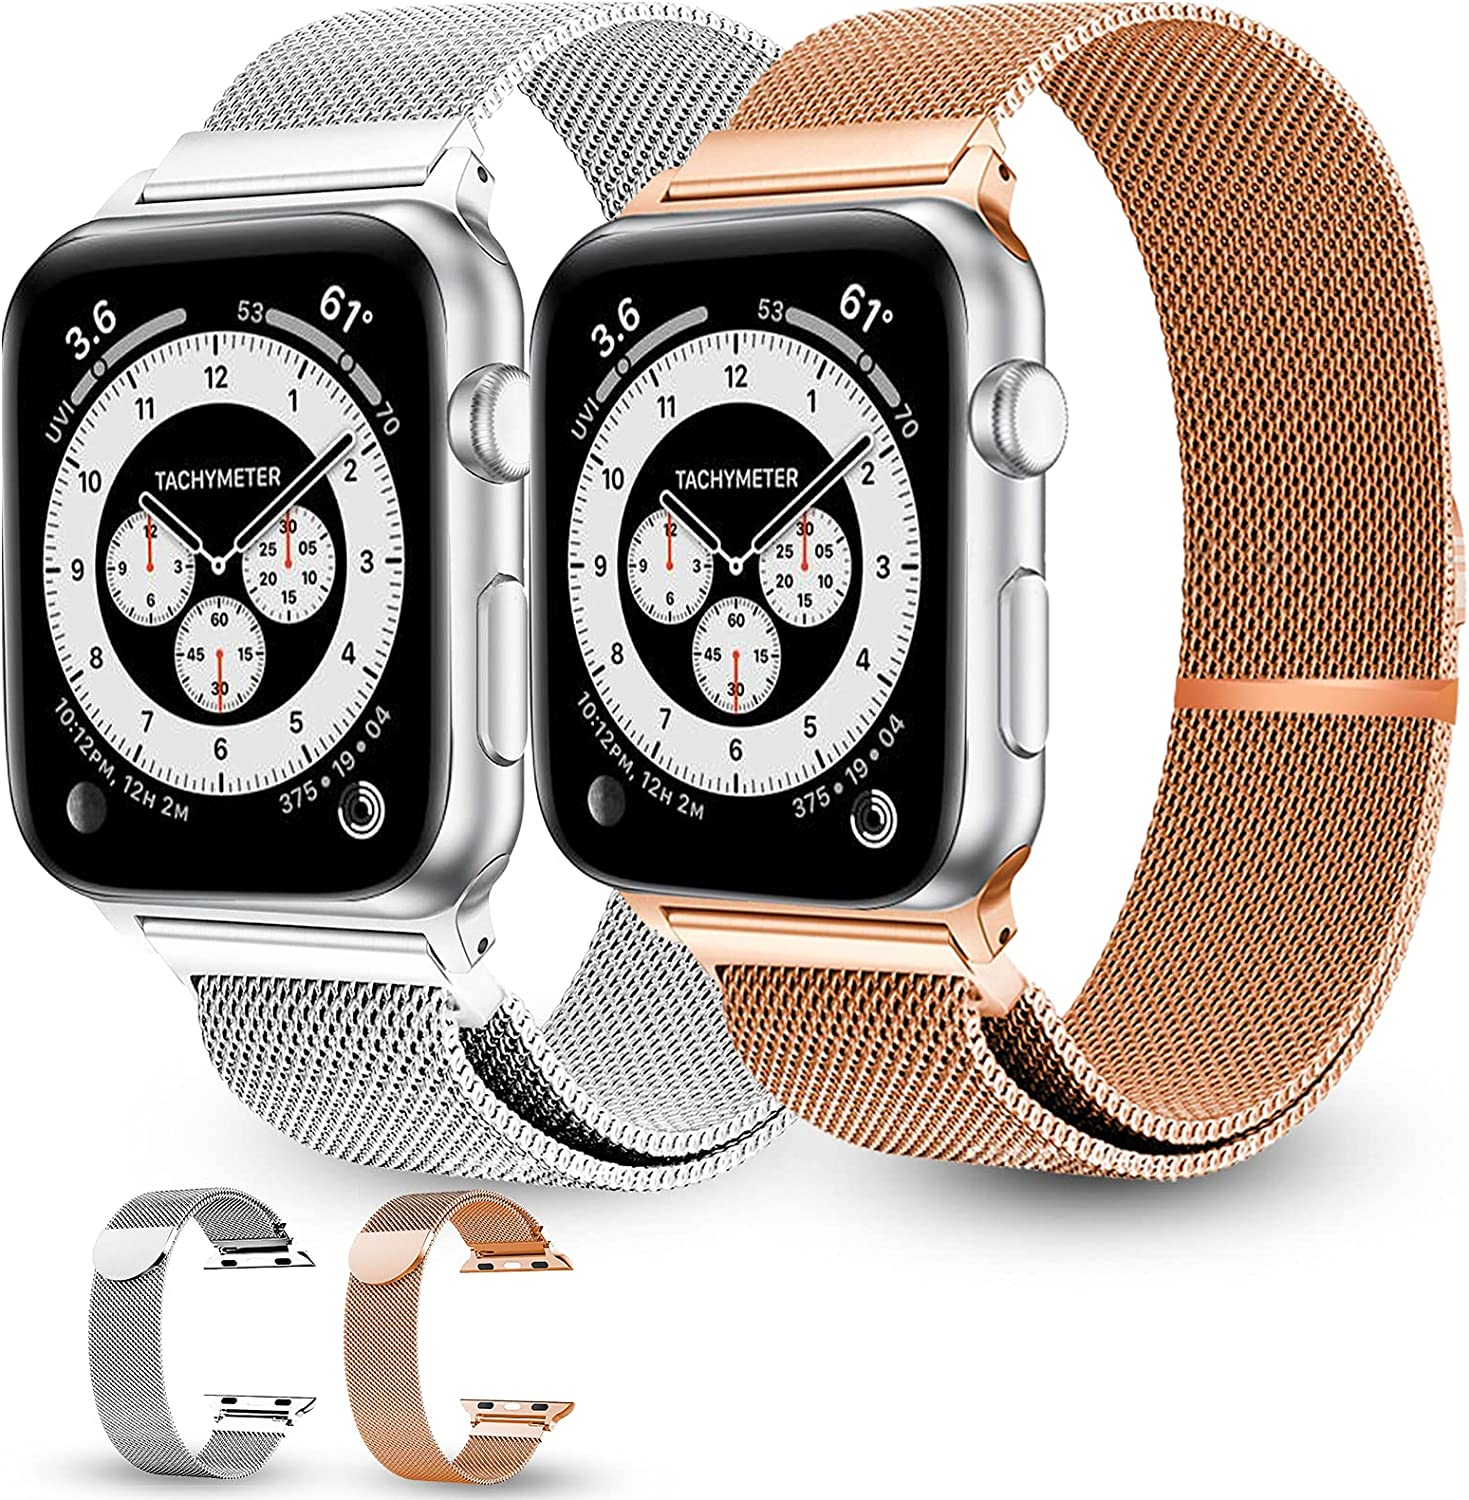 Stainless steel Mesh Magnetic Watch Bands Compatible with Apple Watch 38mm 40mm 42mm 44mm Series 6/5/4/3/2/1 SE,2 packs Adjustable Stainless Steel Straps are Suitable for All Adults